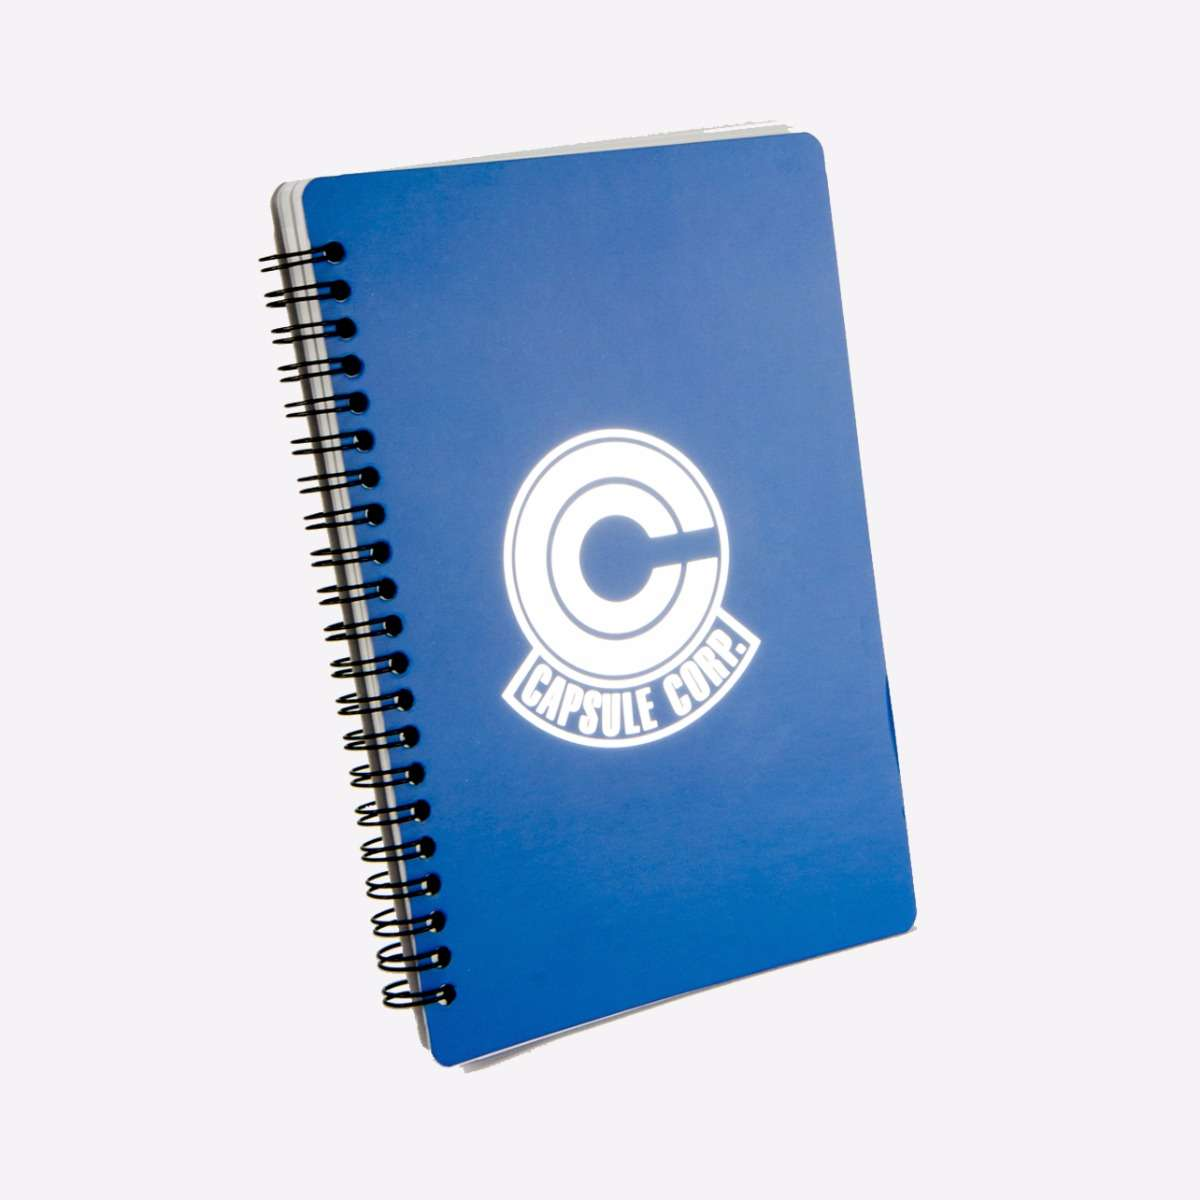 Capsule Corp Notebook home-decor